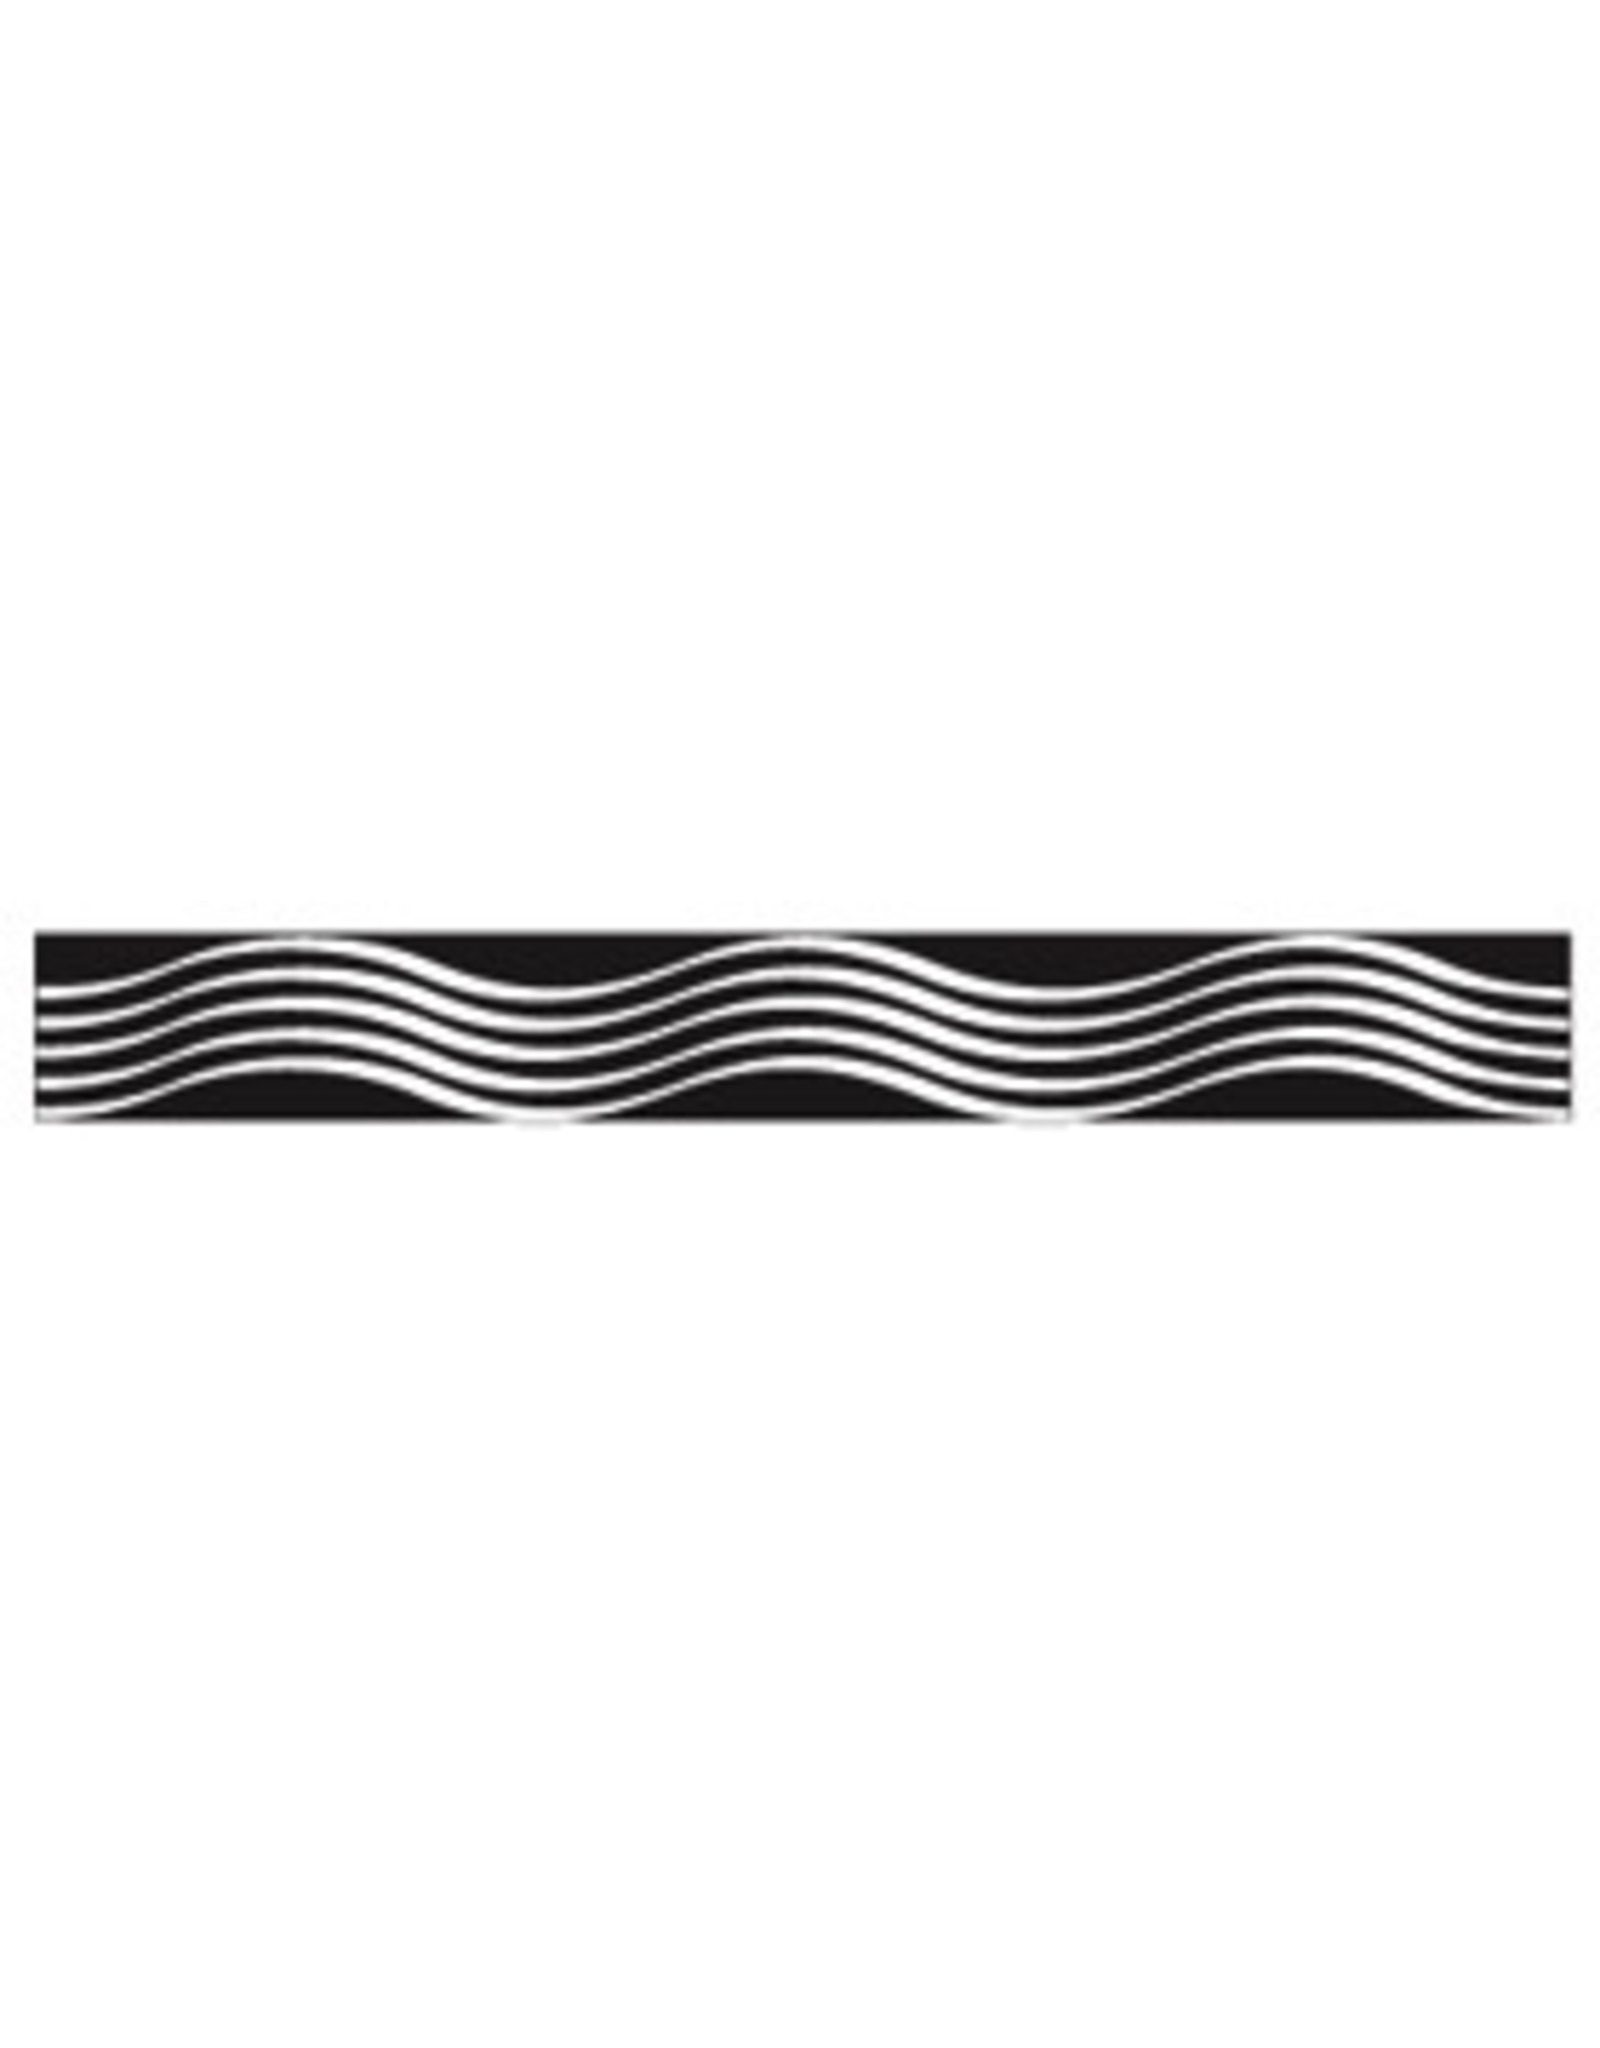 MKM tools Wavy pattern roller